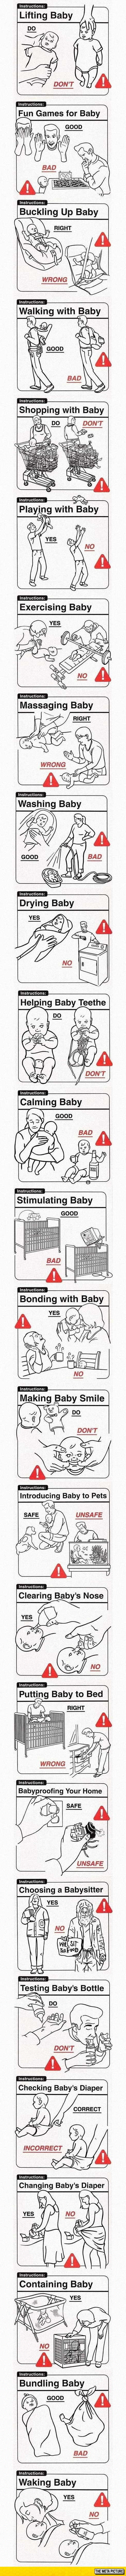 funny-baby-dos-and-donts-comic